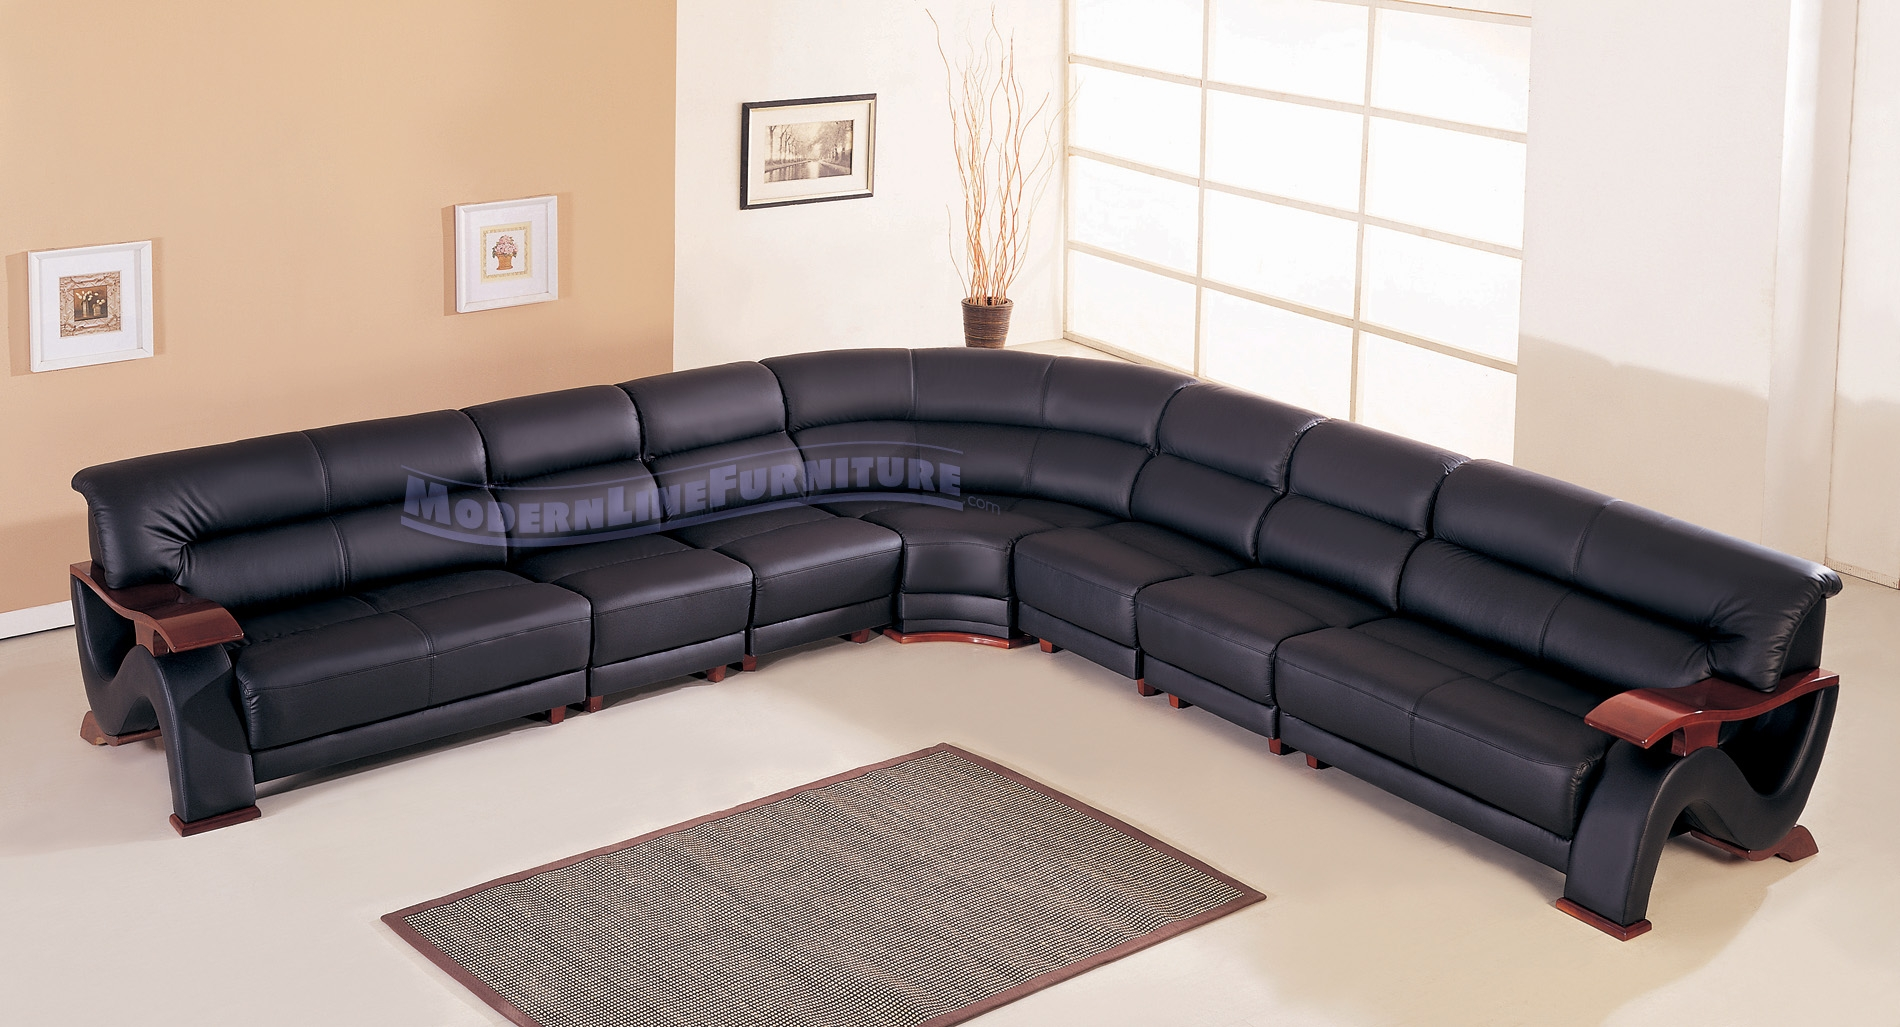 Modern Line Furniture Commercial Furniture Custom Made Inside Custom Made Sectional Sofas (#10 of 12)